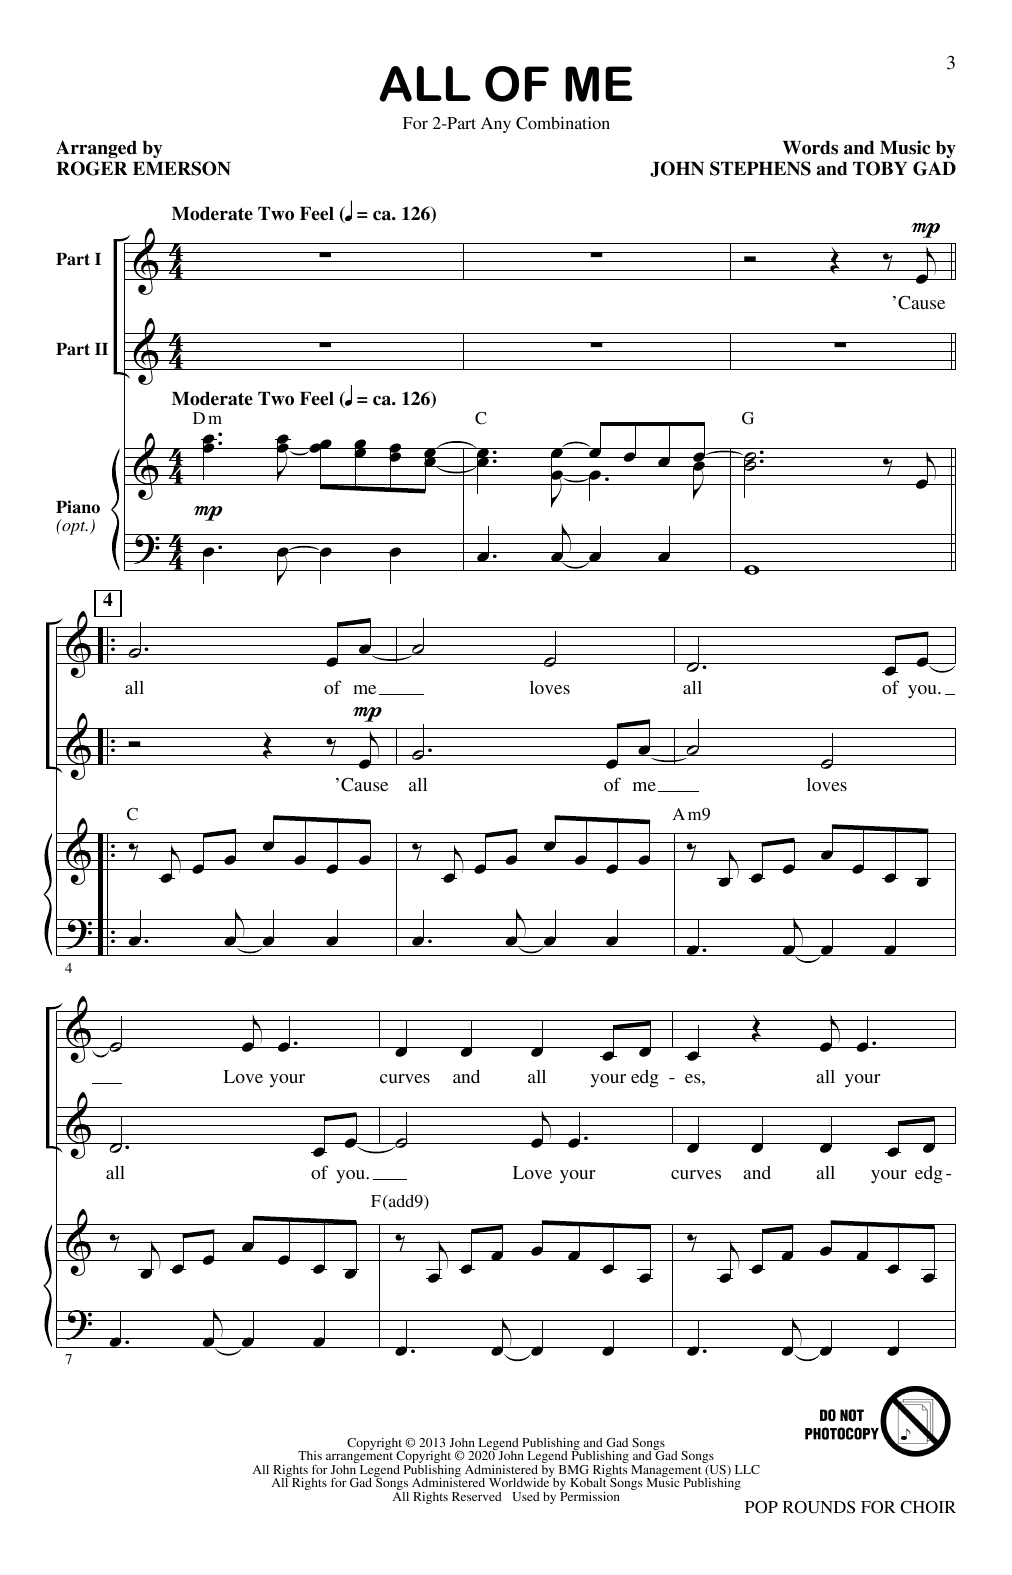 Roger Emerson Pop Rounds for Choir sheet music notes and chords. Download Printable PDF.